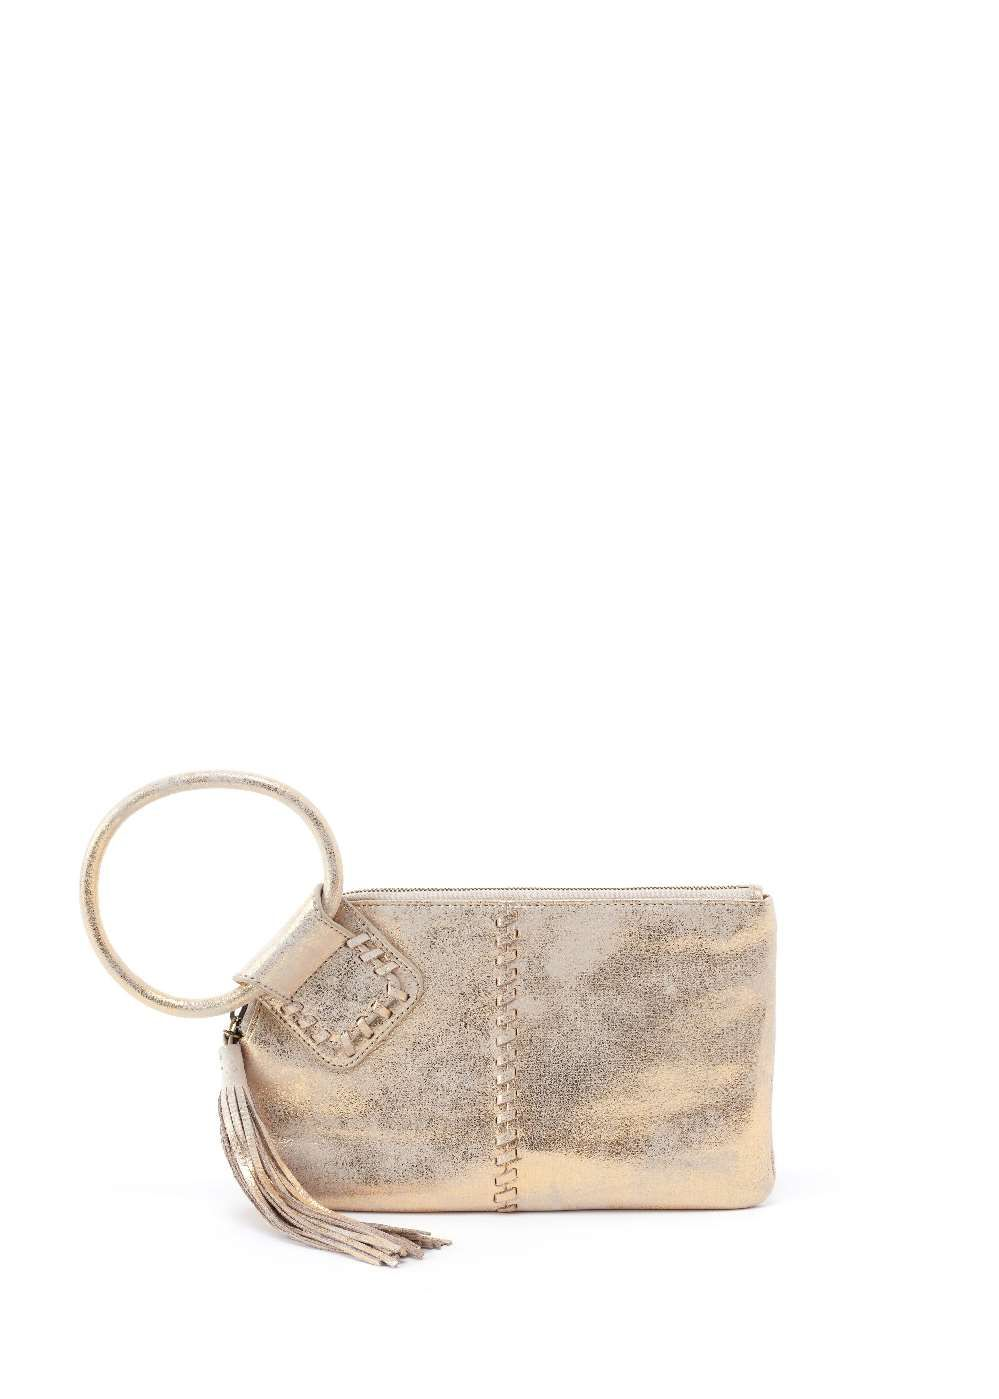 Hobo Sable Distressed Gold Wristlet Clutch